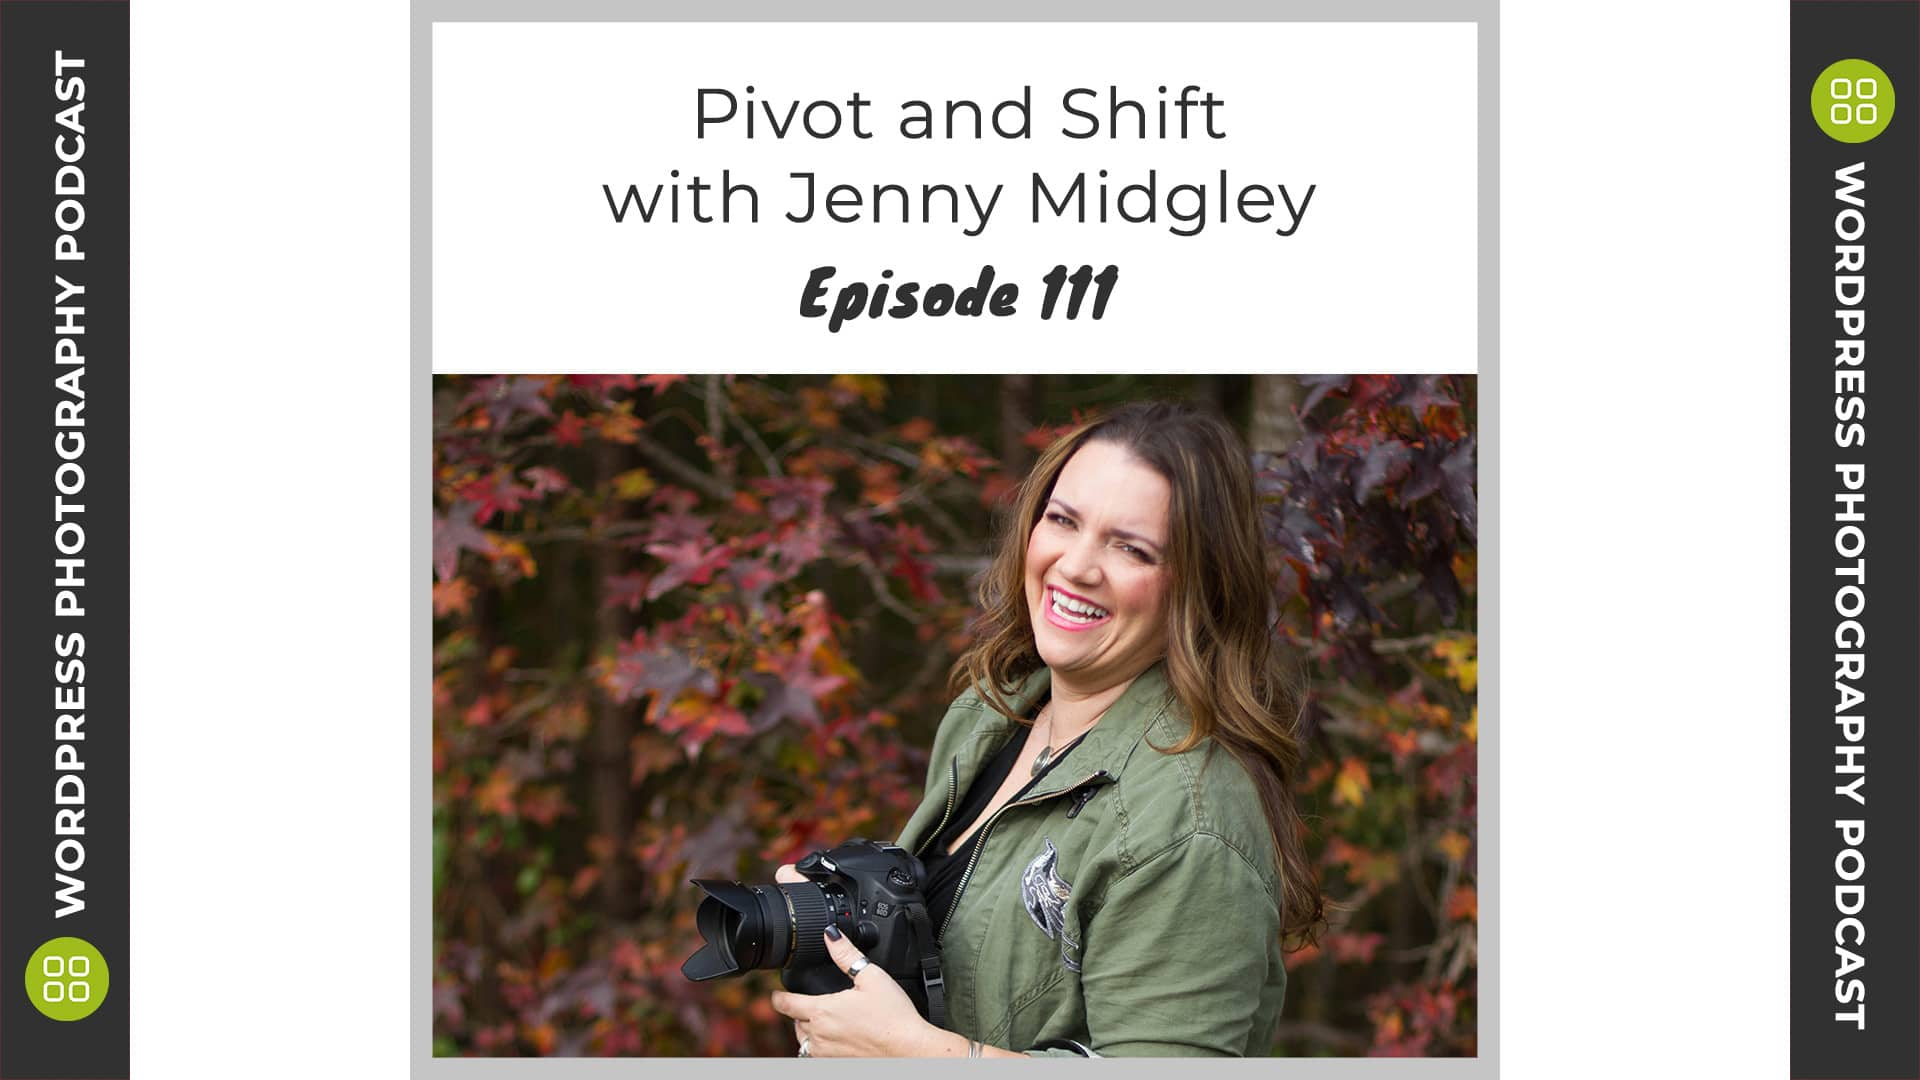 Episode 111 – Pivot and Shift with Jenny Midgley